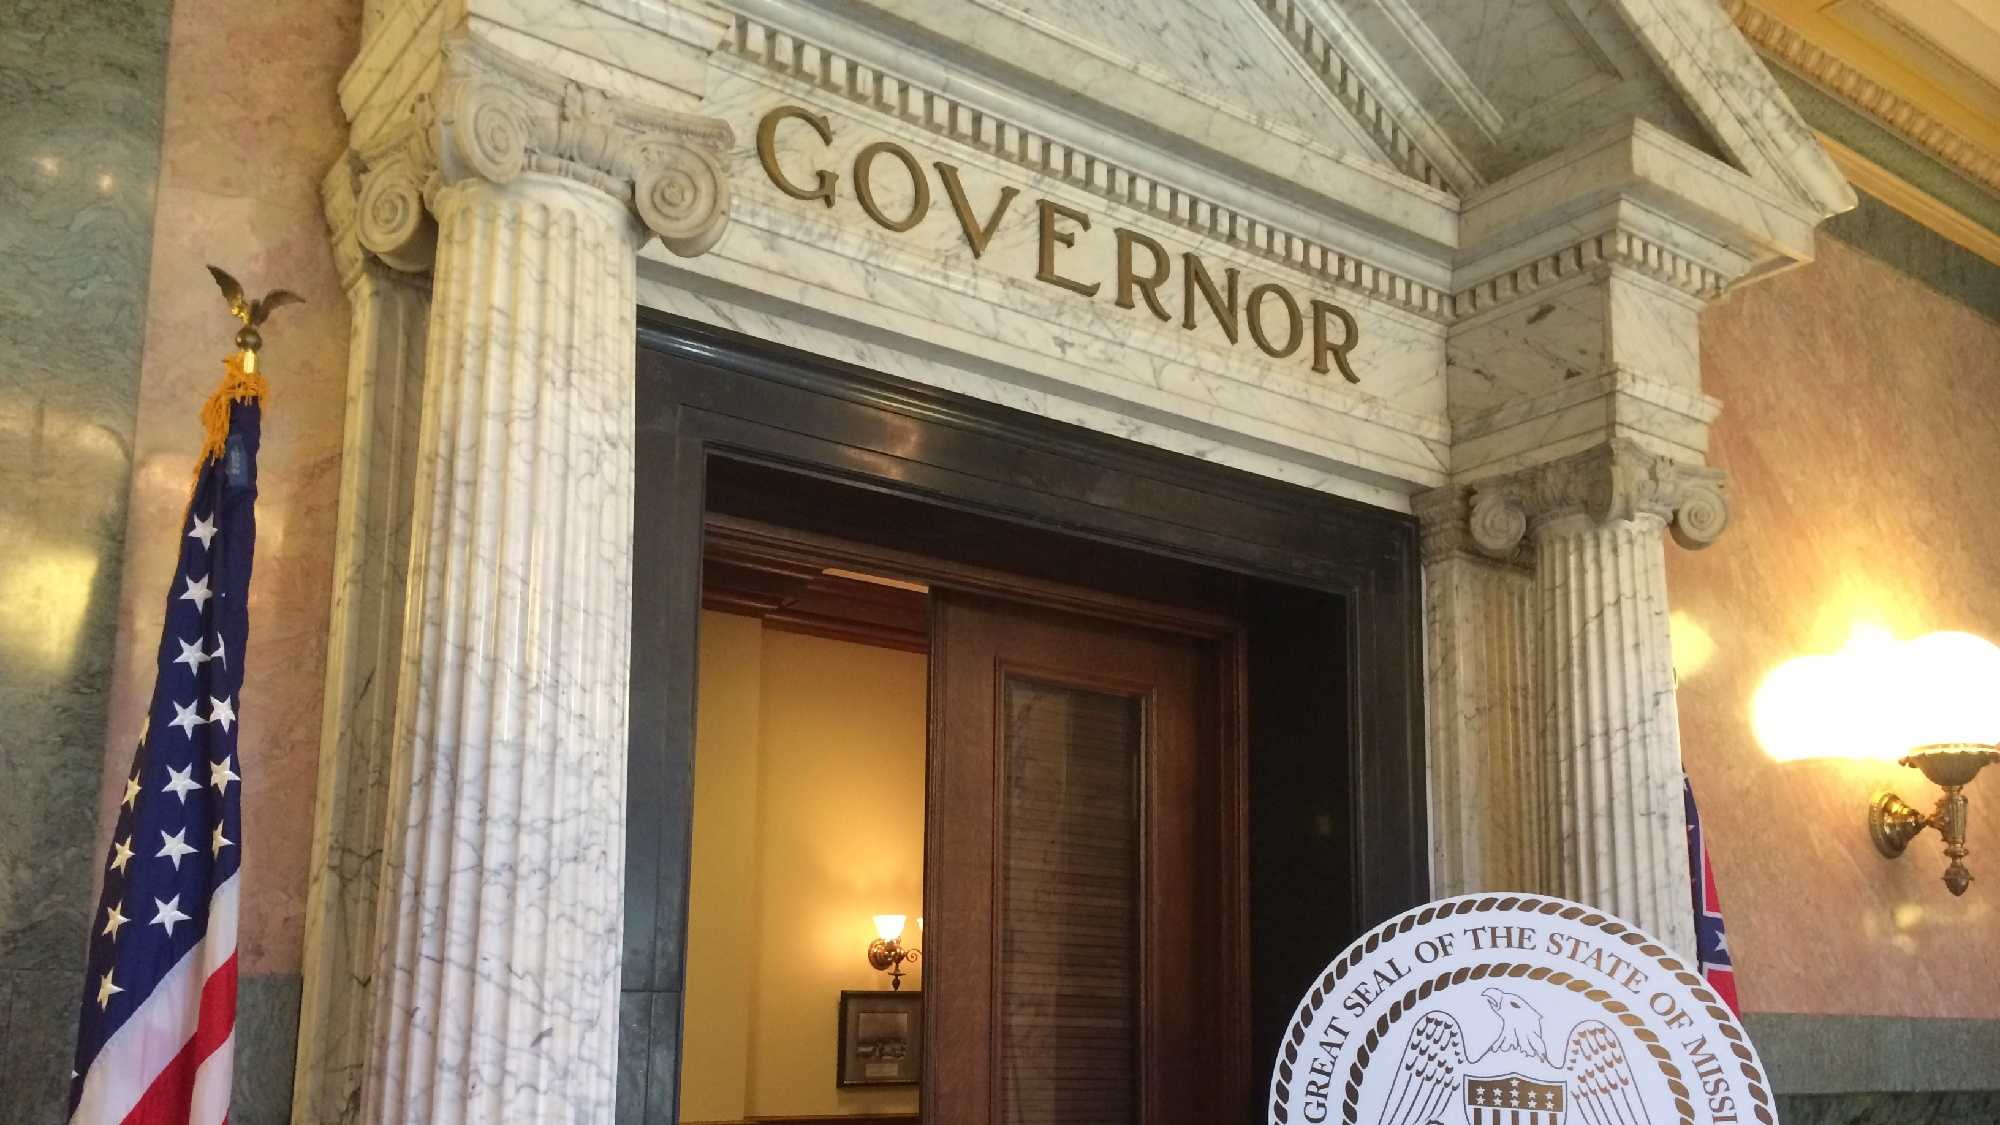 governor's office with state seal